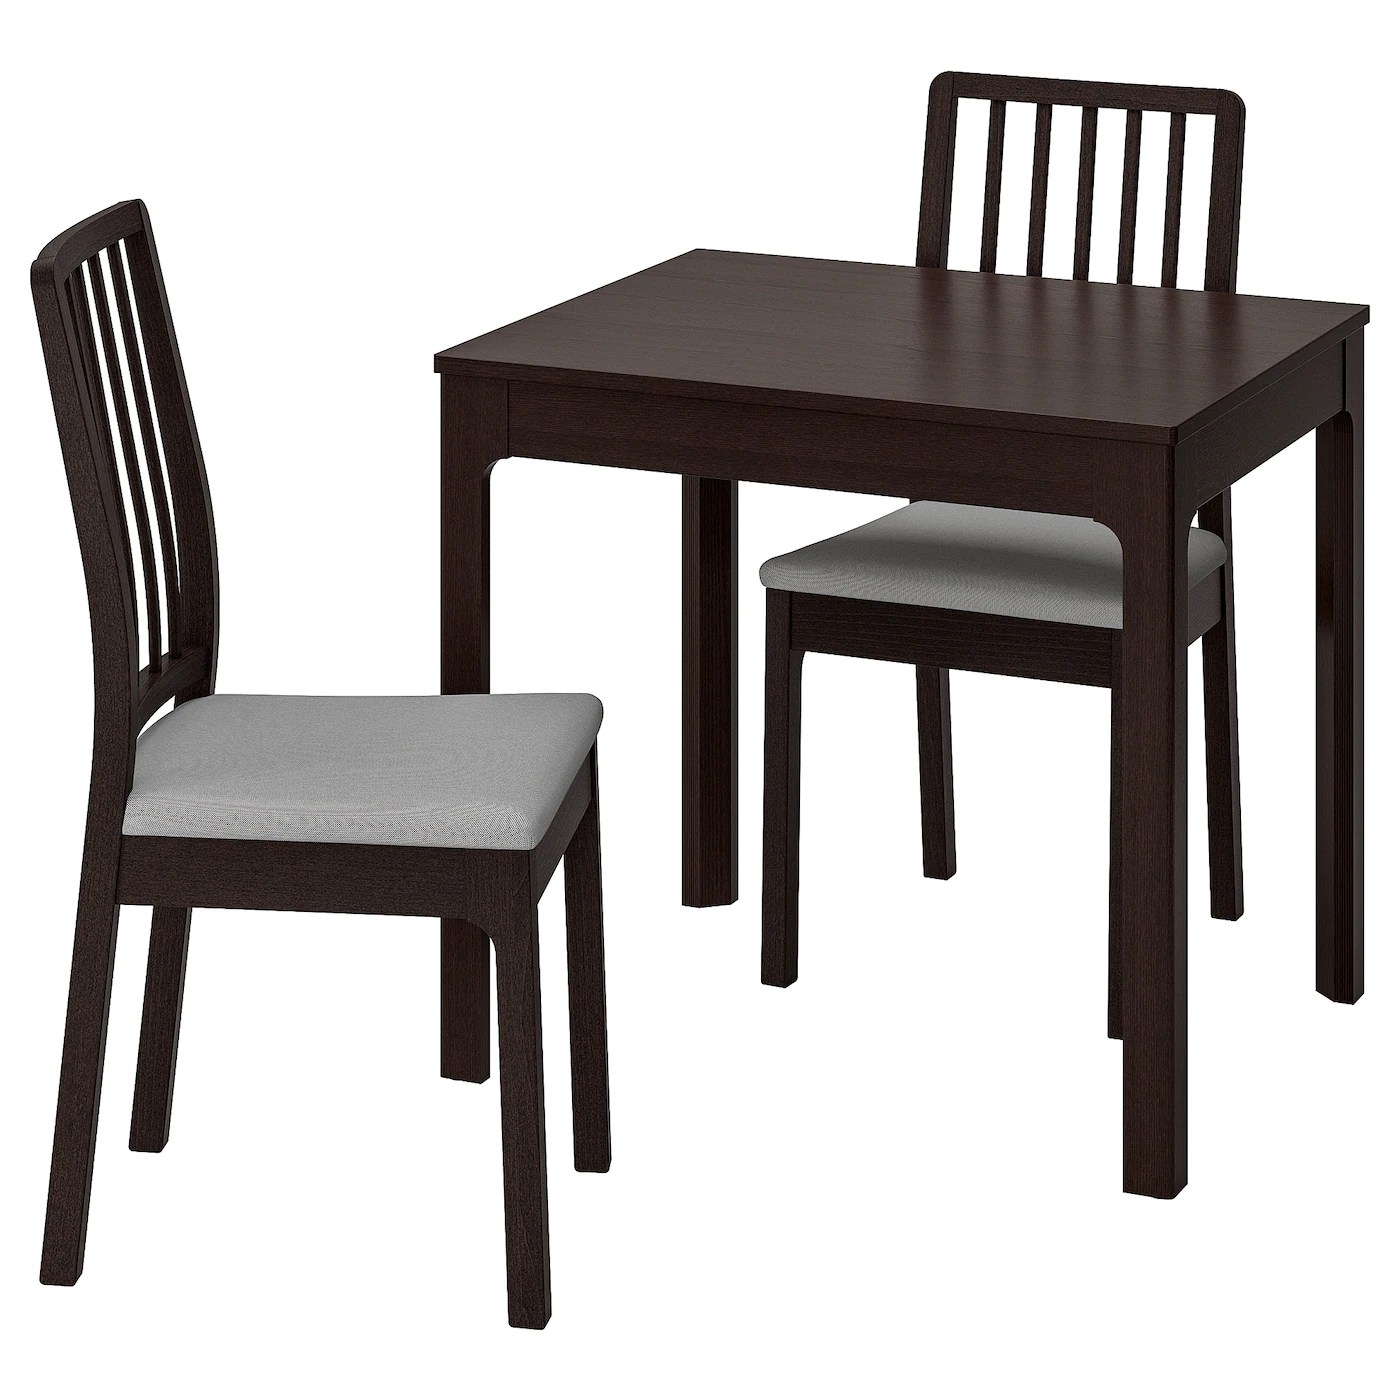 Ikea Couchtisch Dunkelbraun Ekedalen / Ekedalen Table And 2 Chairs - Dark Brown